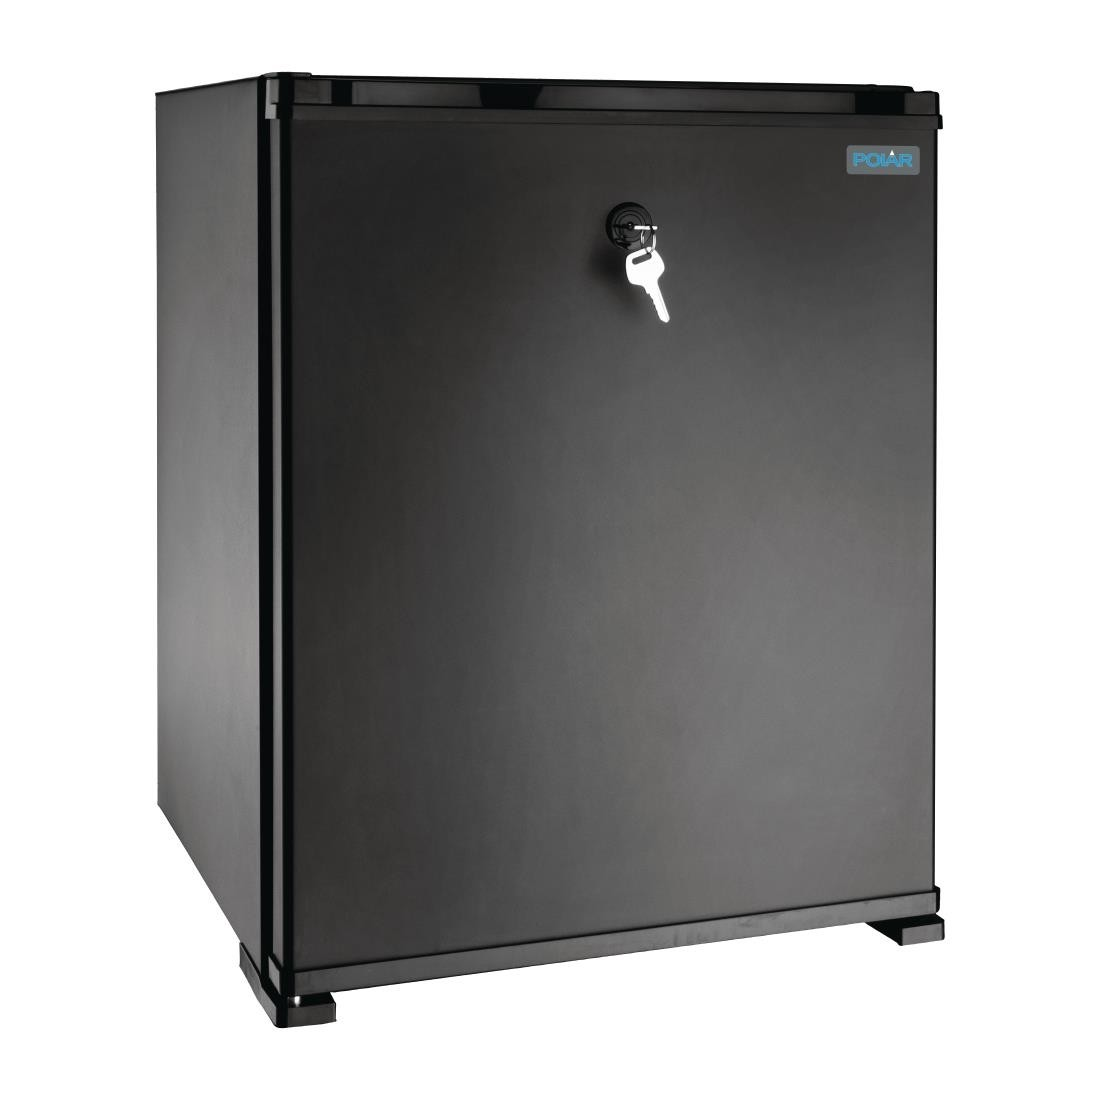 Polar DB848 G-Series Hotel Room Fridge